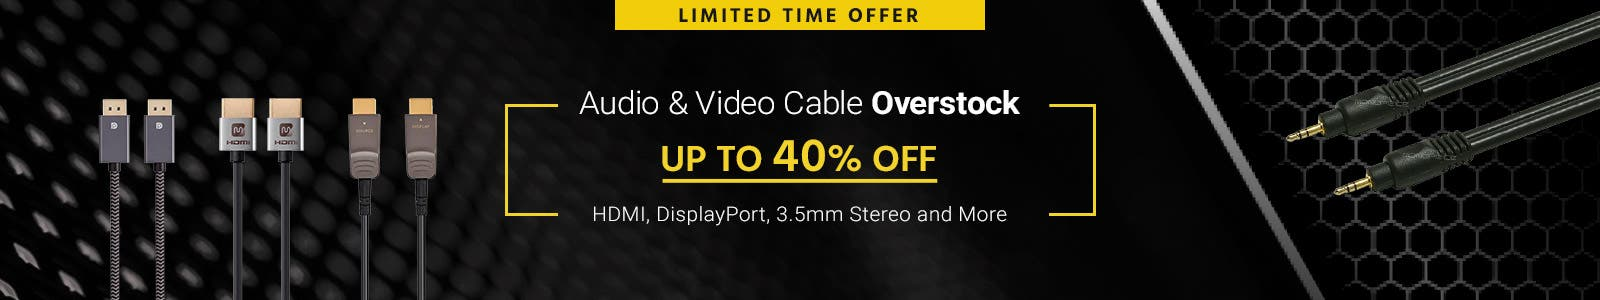 Audio & Video Cable Overstock Up to 40% off HDMI, DisplayPort, 3.5mm Stereo and More Limited Time Offer